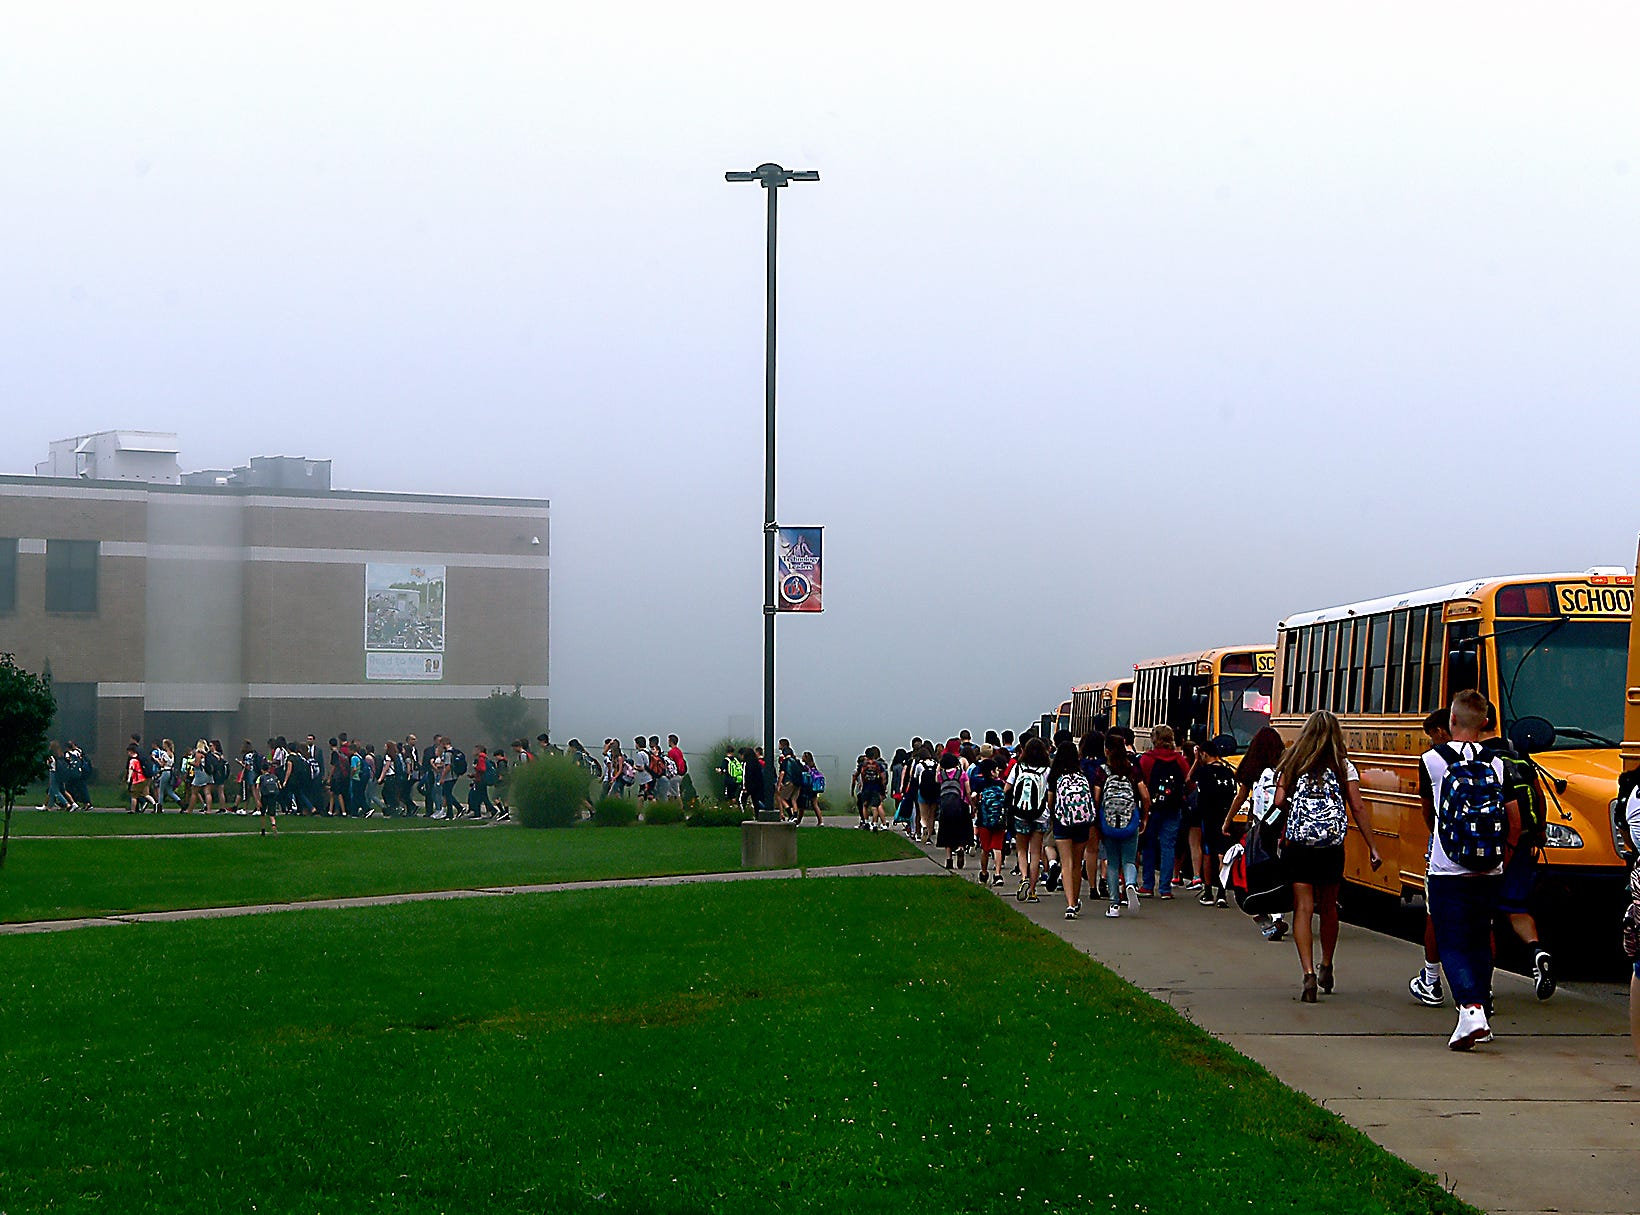 First day of classes at Owego Apalachin Middle School and Owego Free Academy, Wednesday, September 5, 2018.